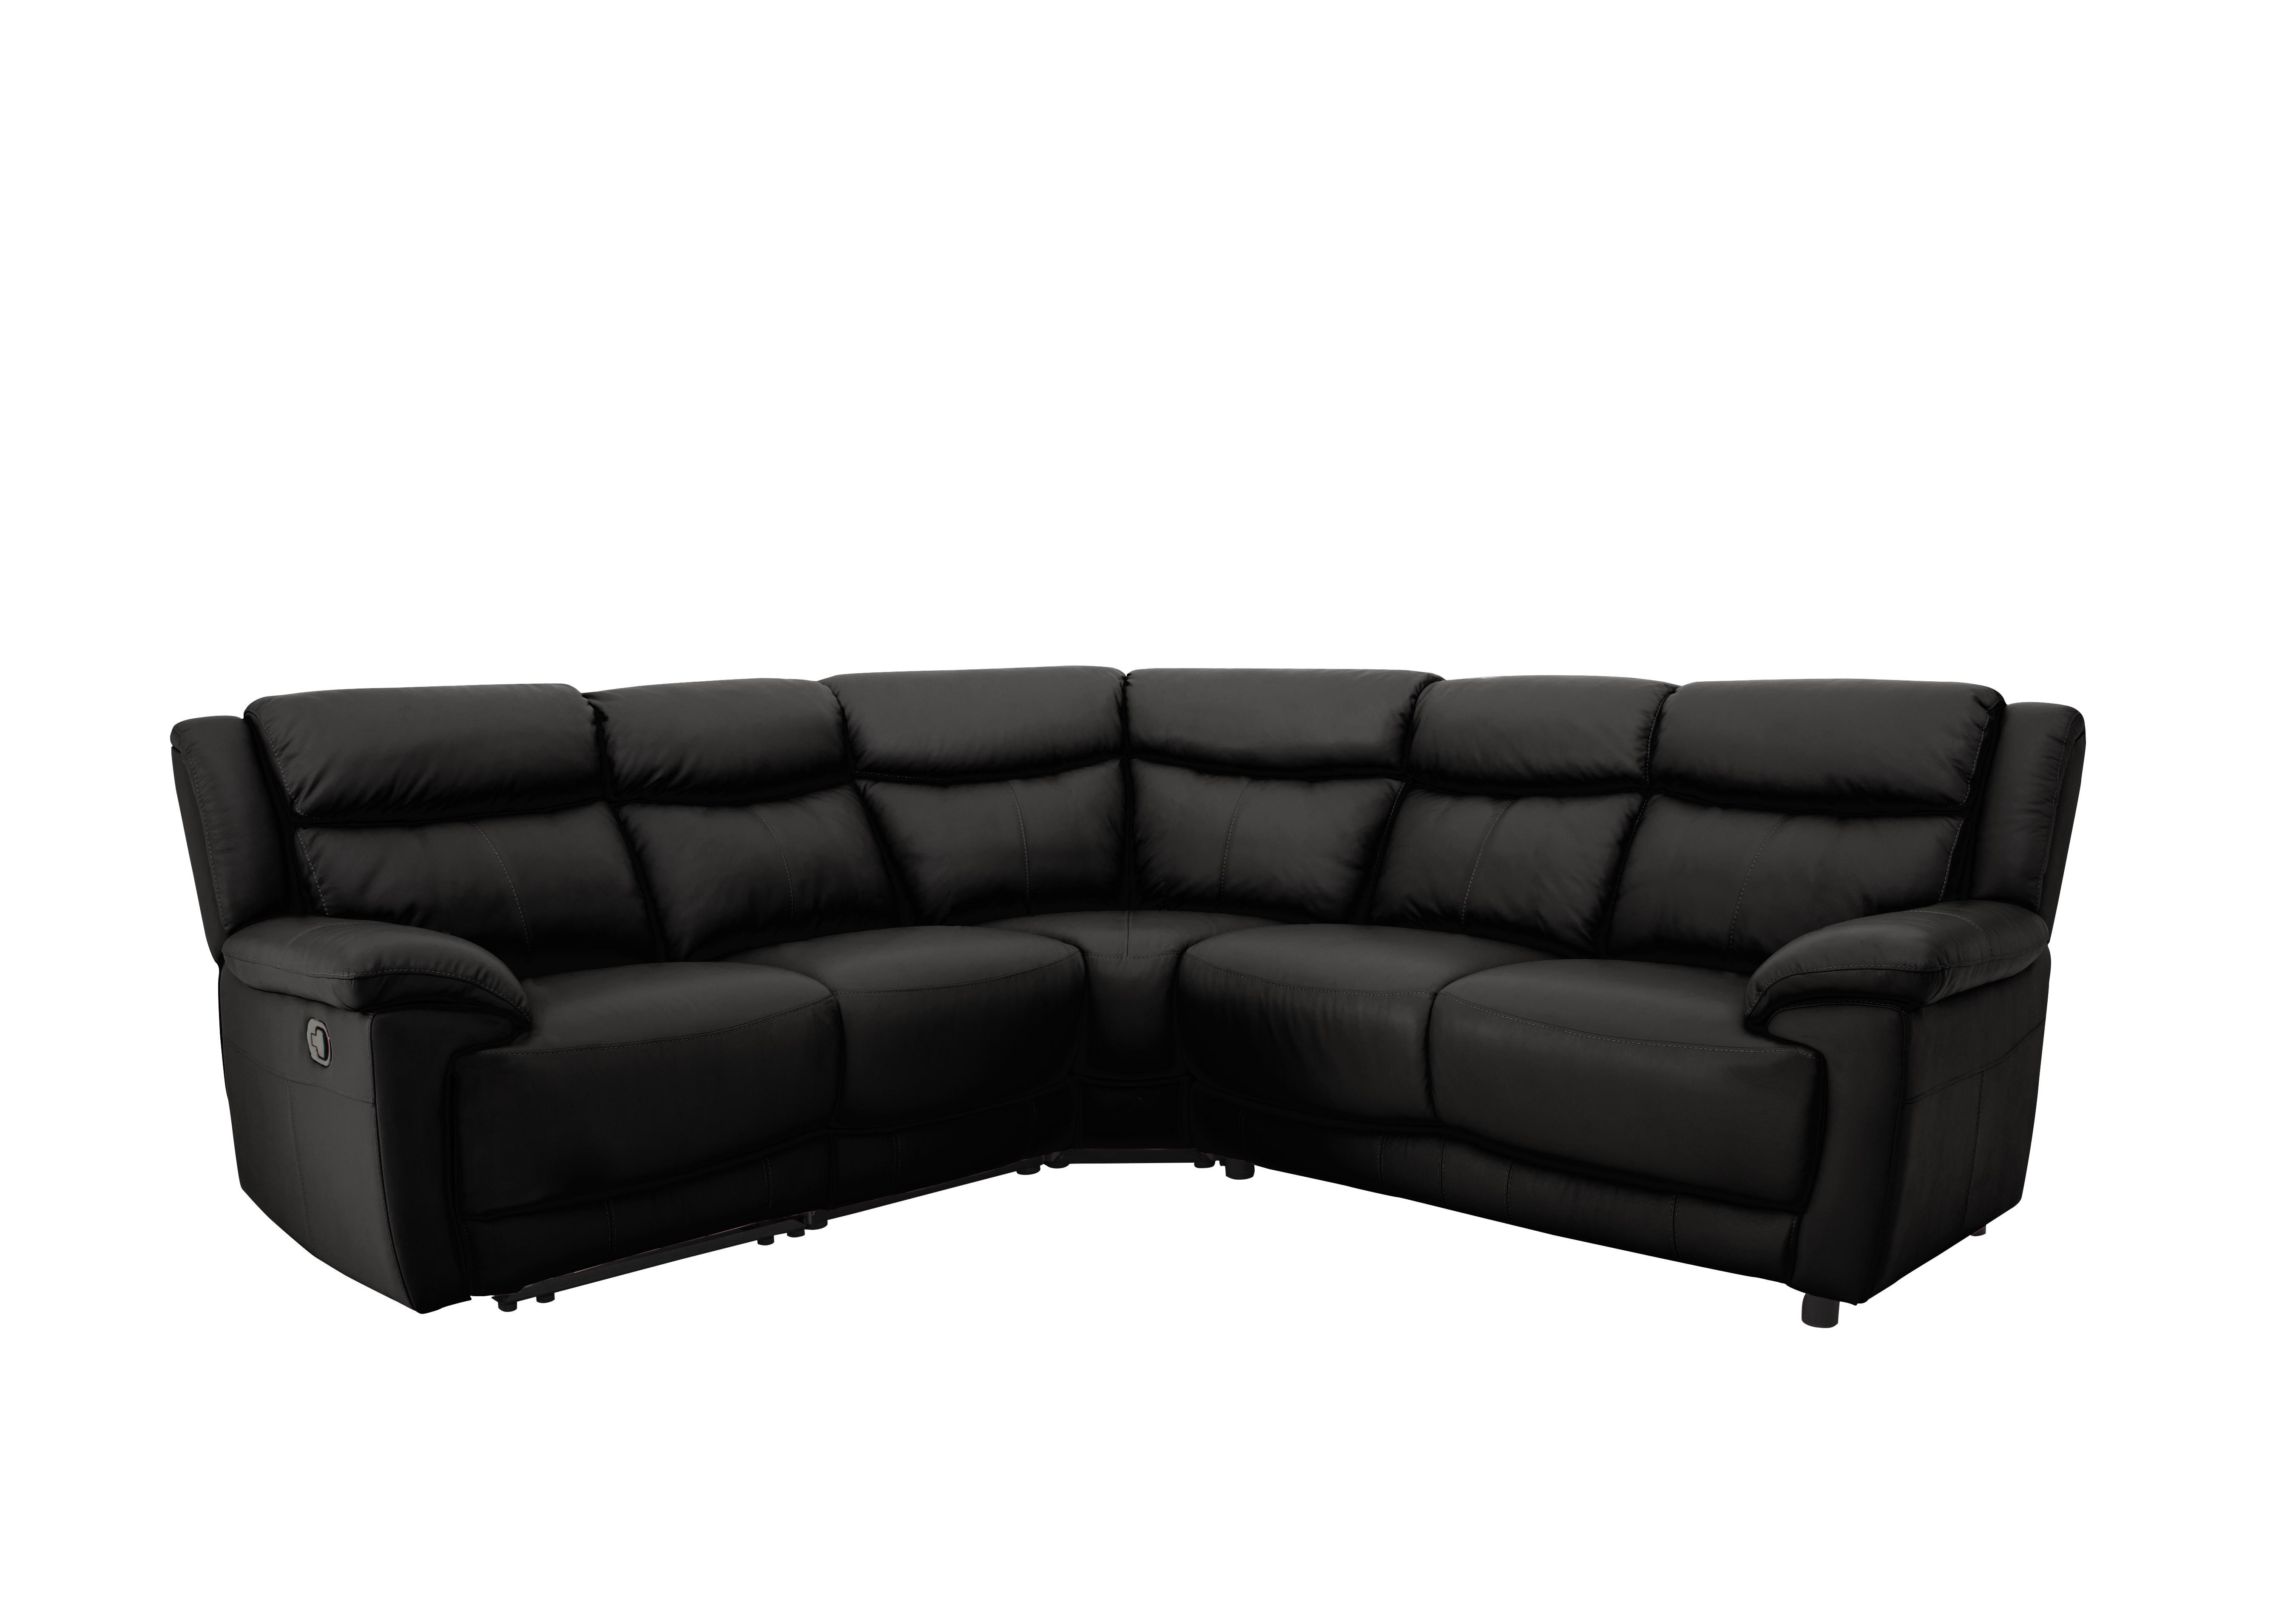 corner sofa bed recliner black leather texture touch world of furniture